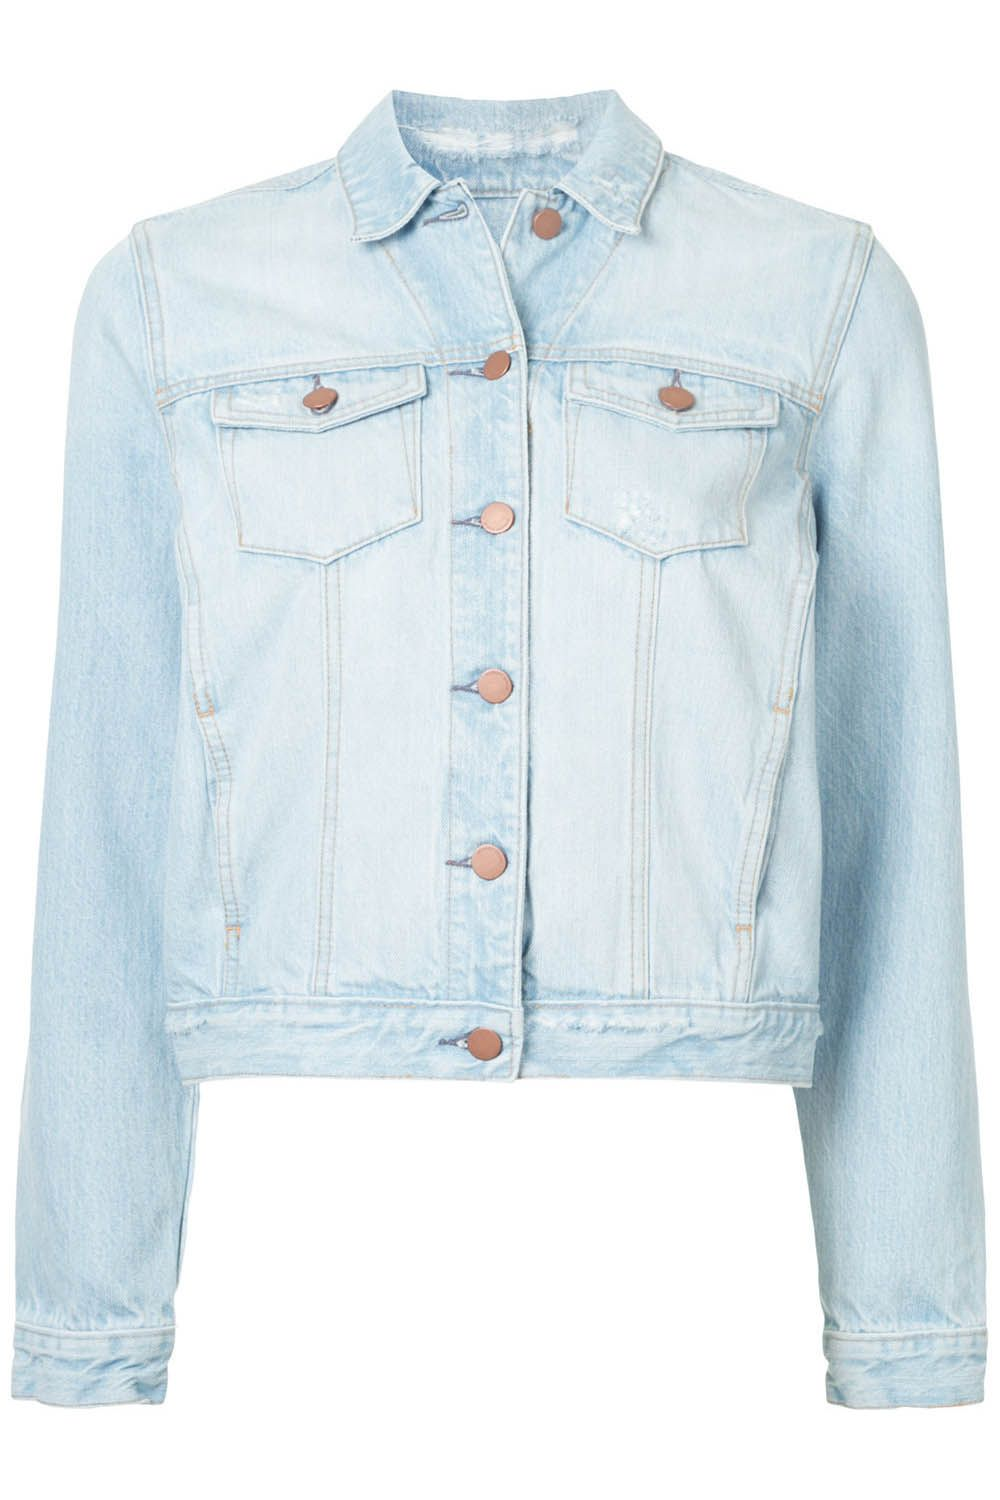 hbz-the-list-spring-jackets-nobody-denim-1519143360.jpg (1000×1500)